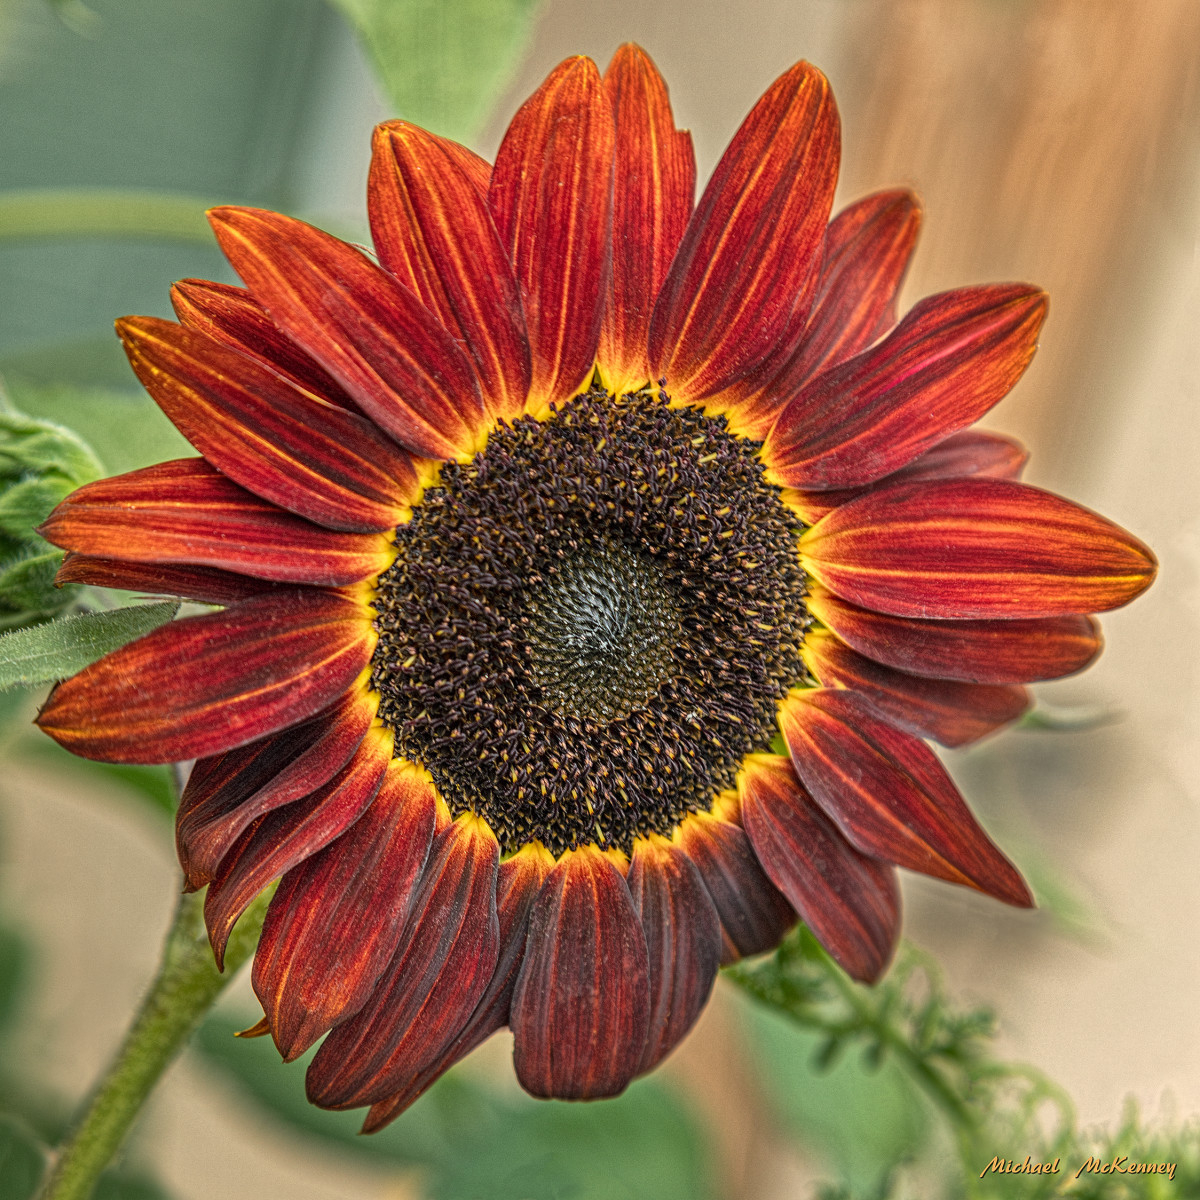 This is the Moulin Rouge sunflower, a different variety grown by our friends, Joseph and Eileen Lagarde in New Mexico.